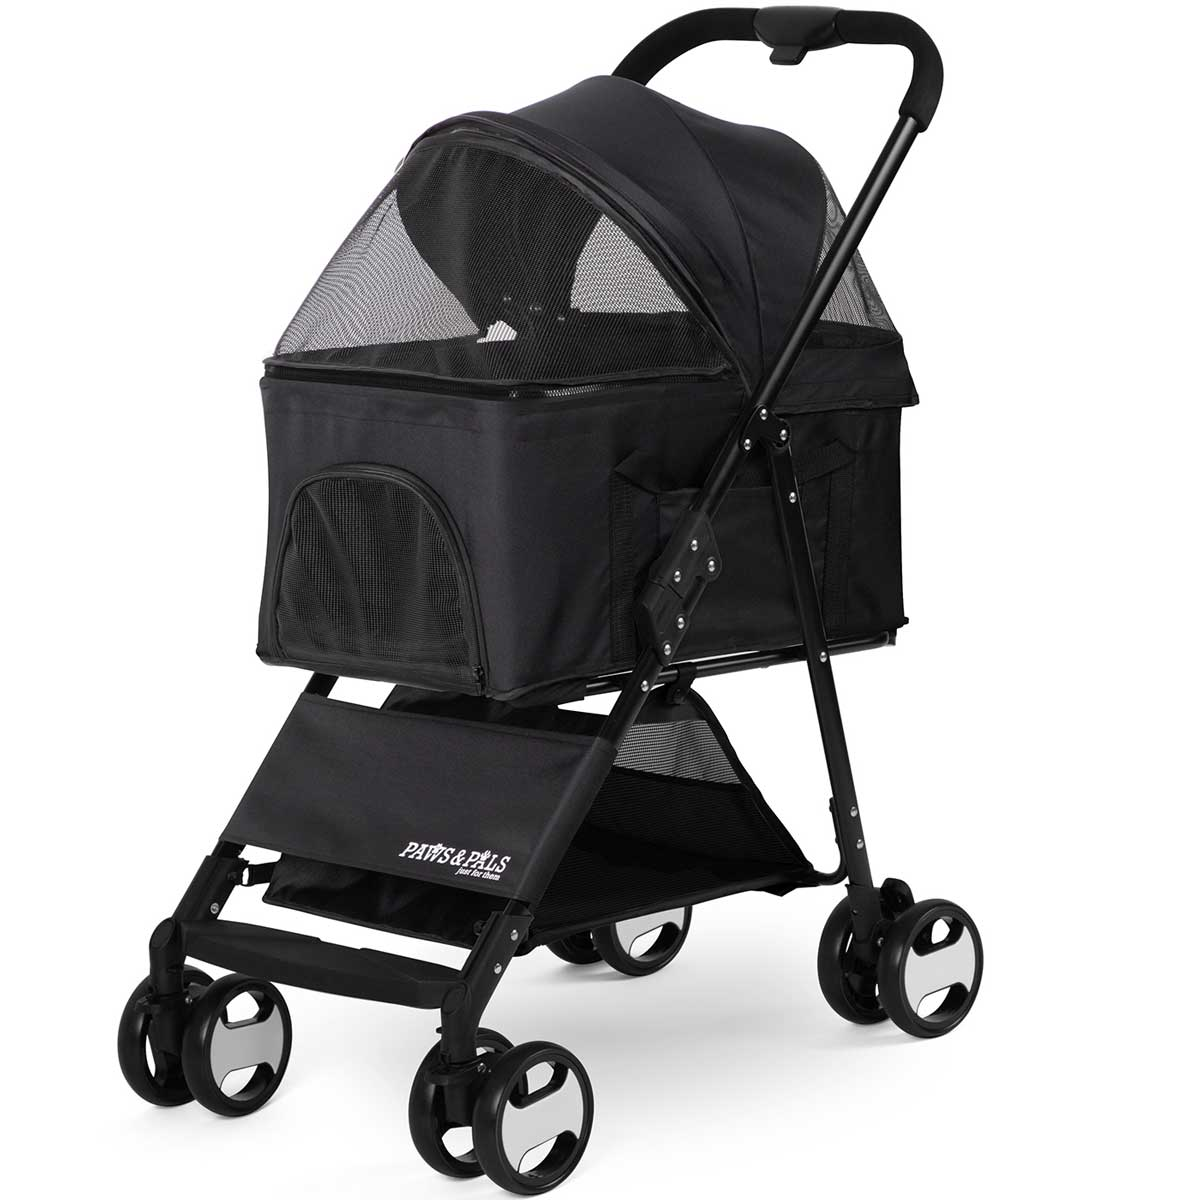 Paw and Pals dog stroller Adventure Pup Essentials Trail and Kale